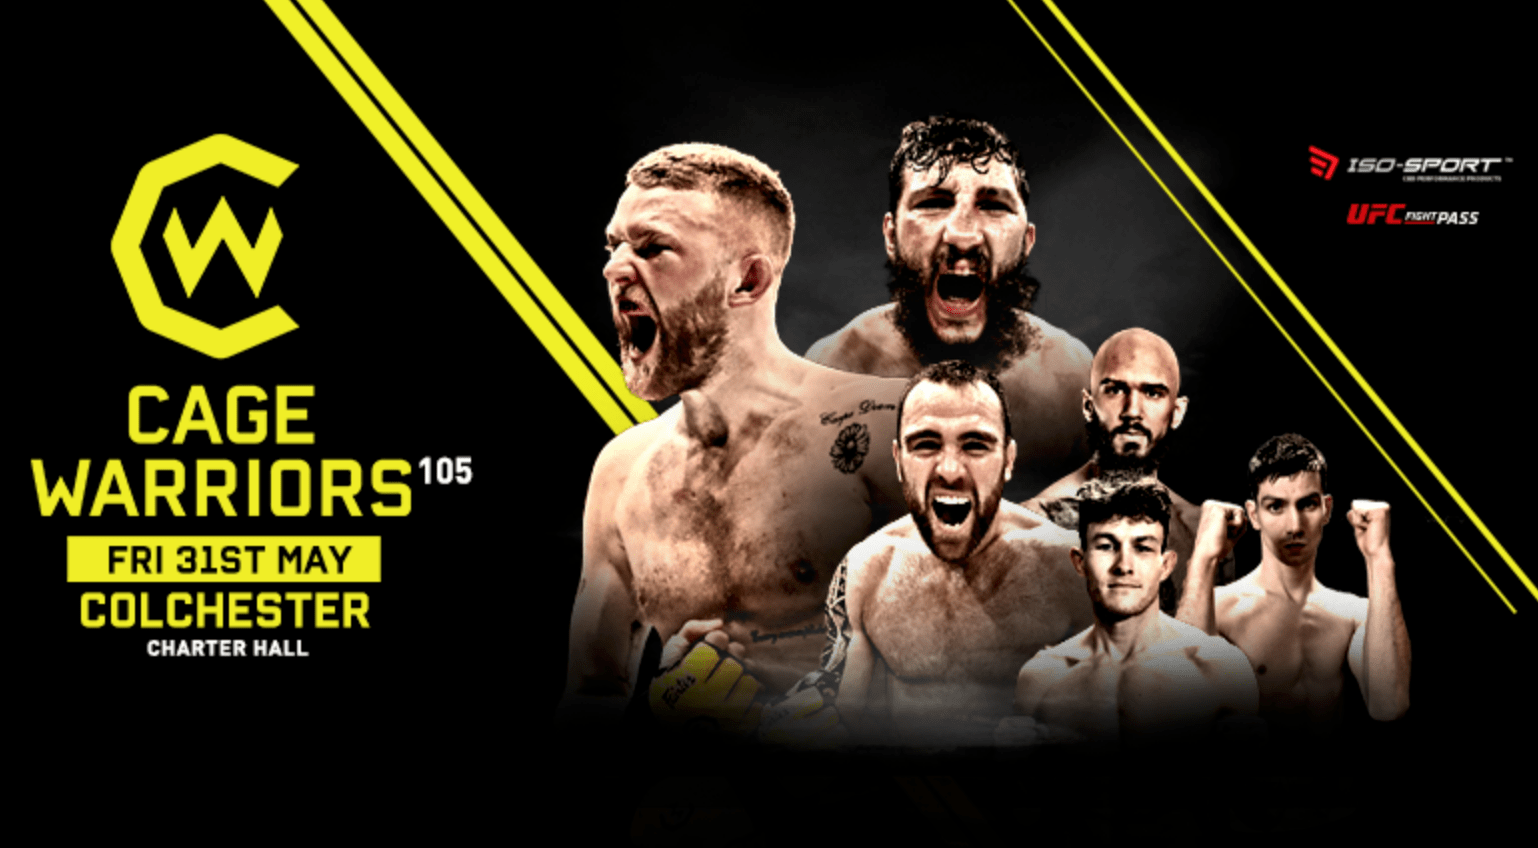 Cage Warriors 105 Results